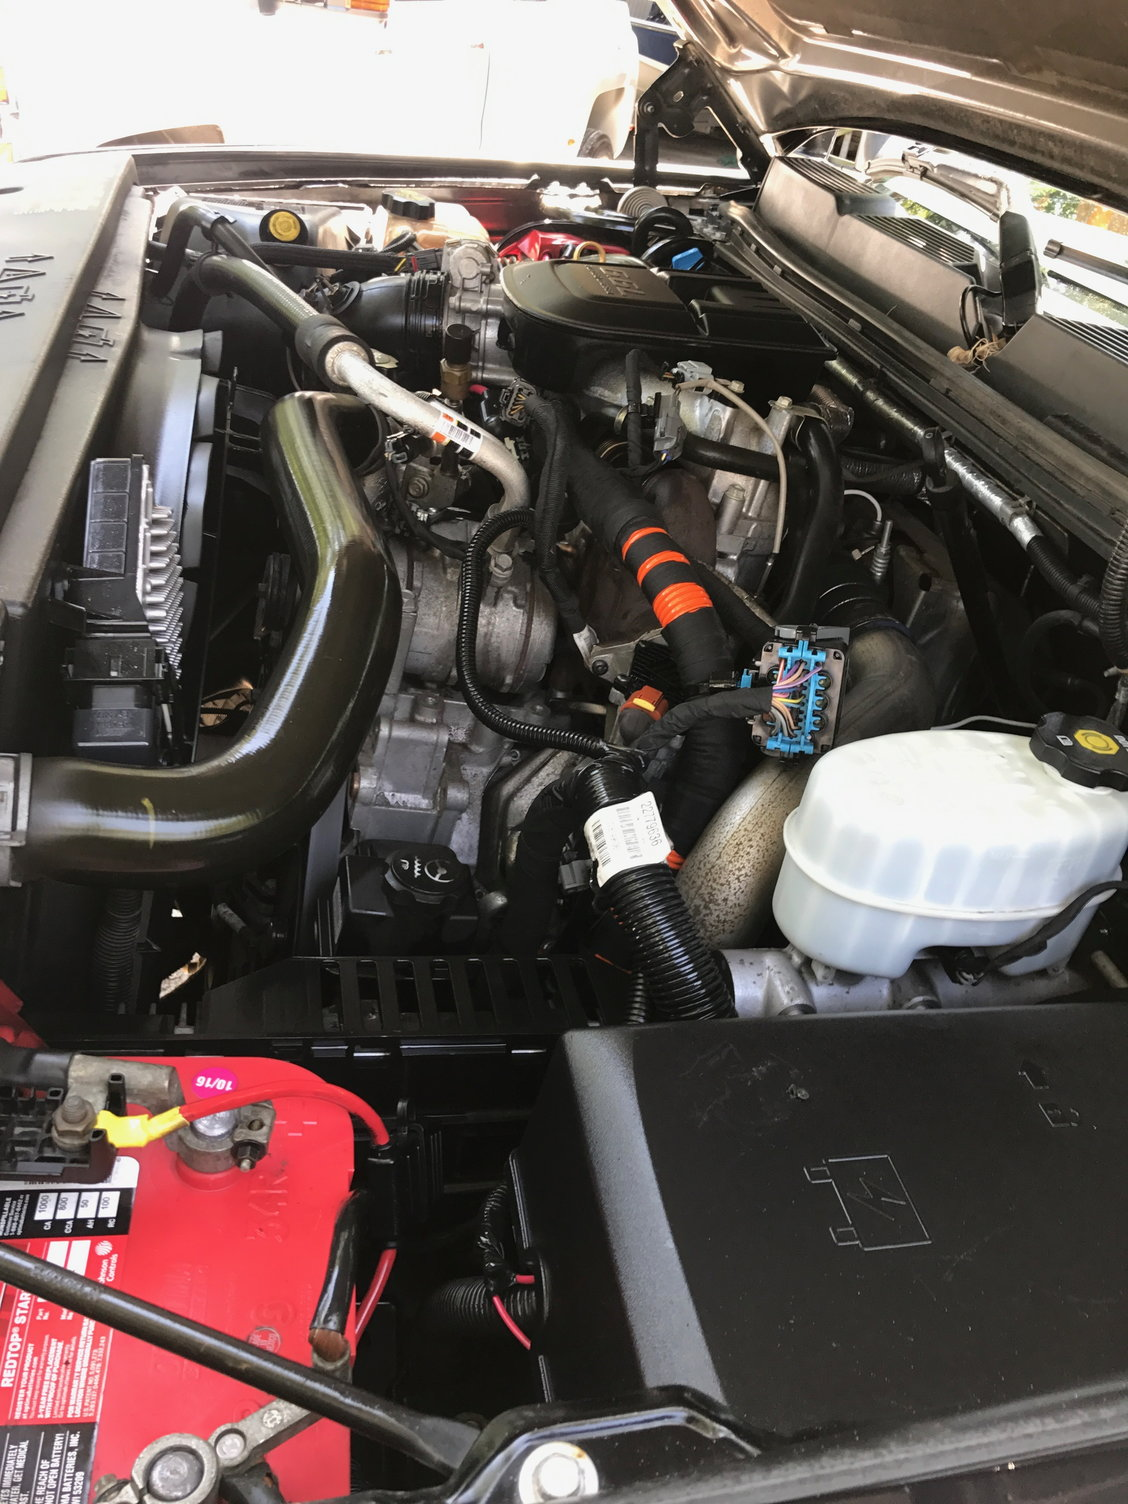 Duramax Def Delete >> 2011 duramax - The Hull Truth - Boating and Fishing Forum